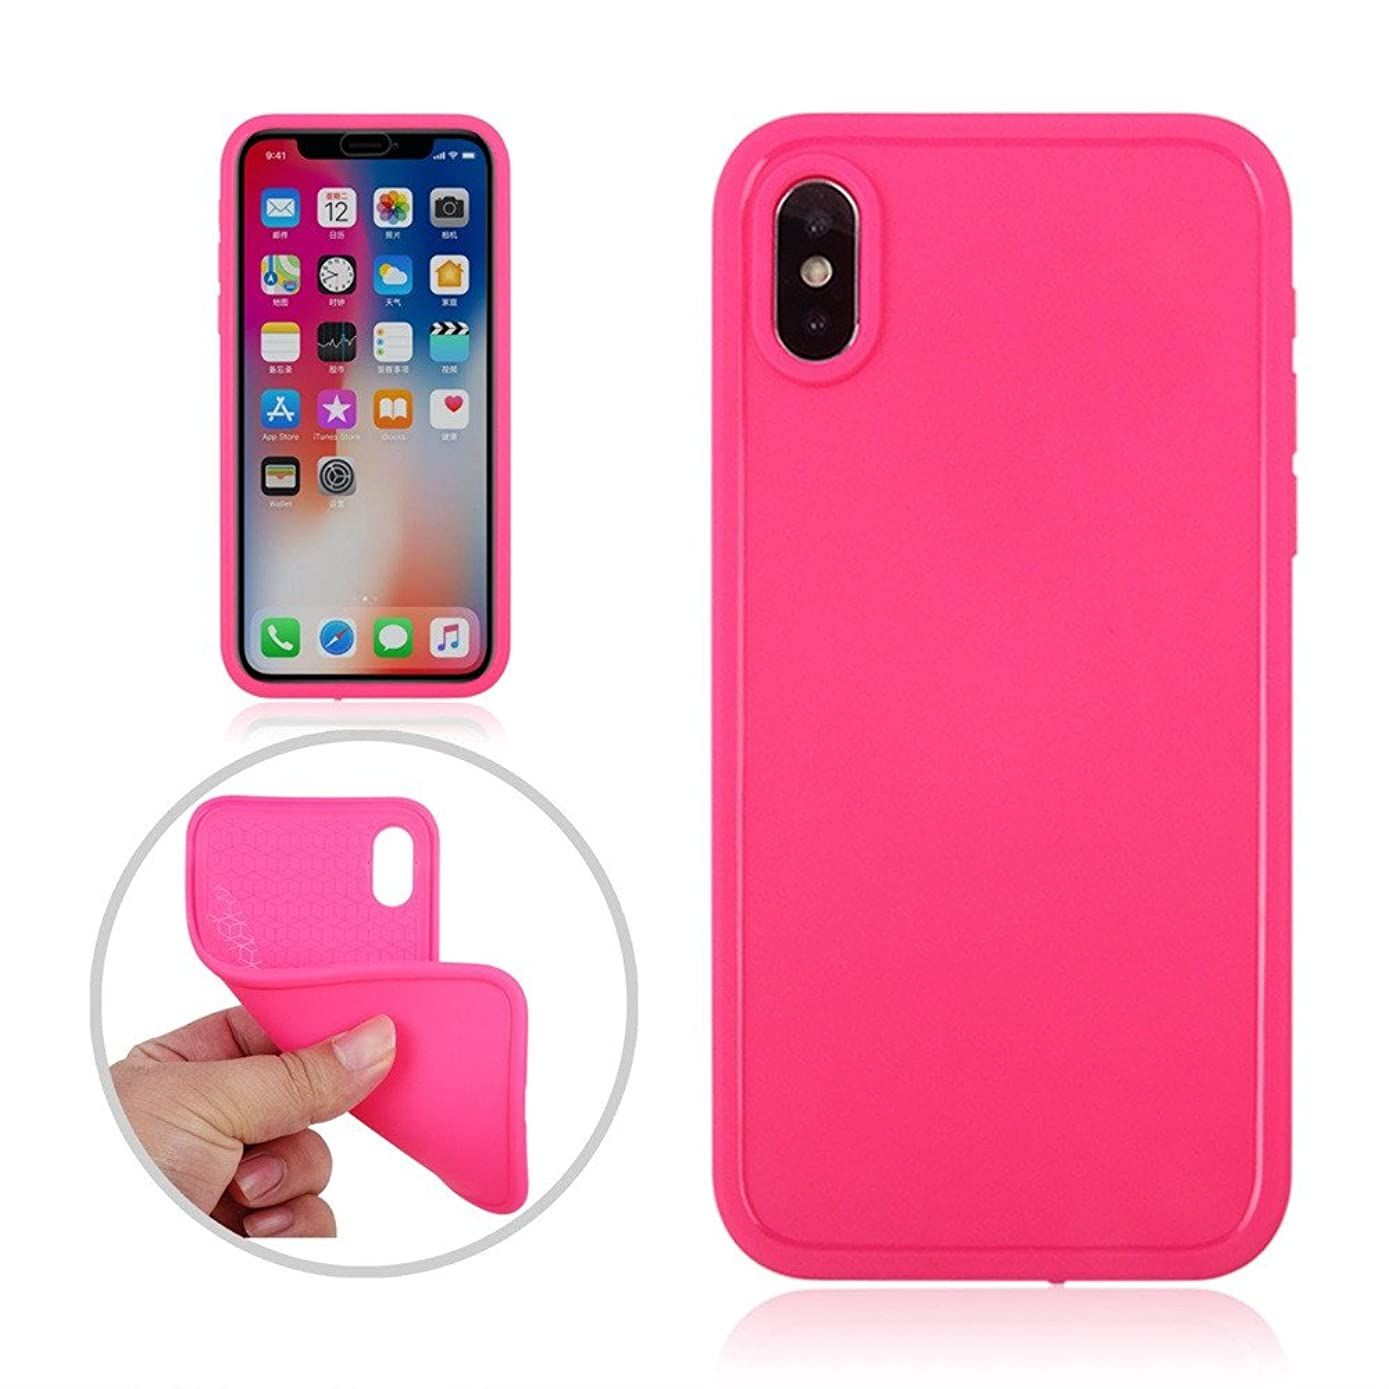 Indexshop Mobile Phone case for Apple iPhone X IPX6 Full Coverage Waterproof Slim Soft TPU PC Solid Color Protective Cover (Hot Pink)